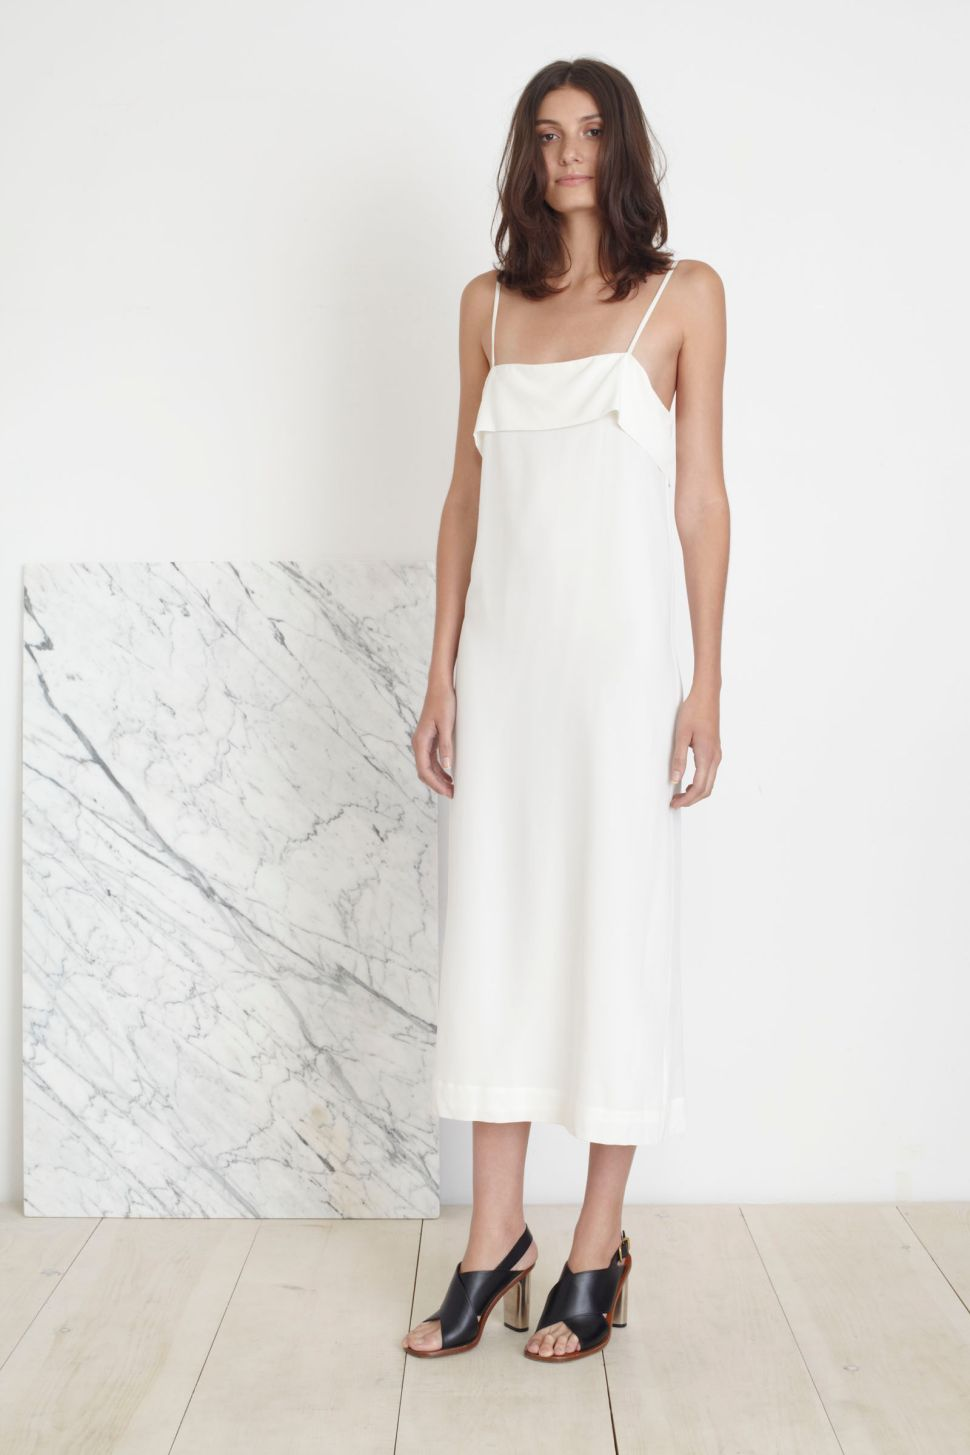 Keep Your Cool This Weekend in Apiece Apart's Breezy Slip Dress